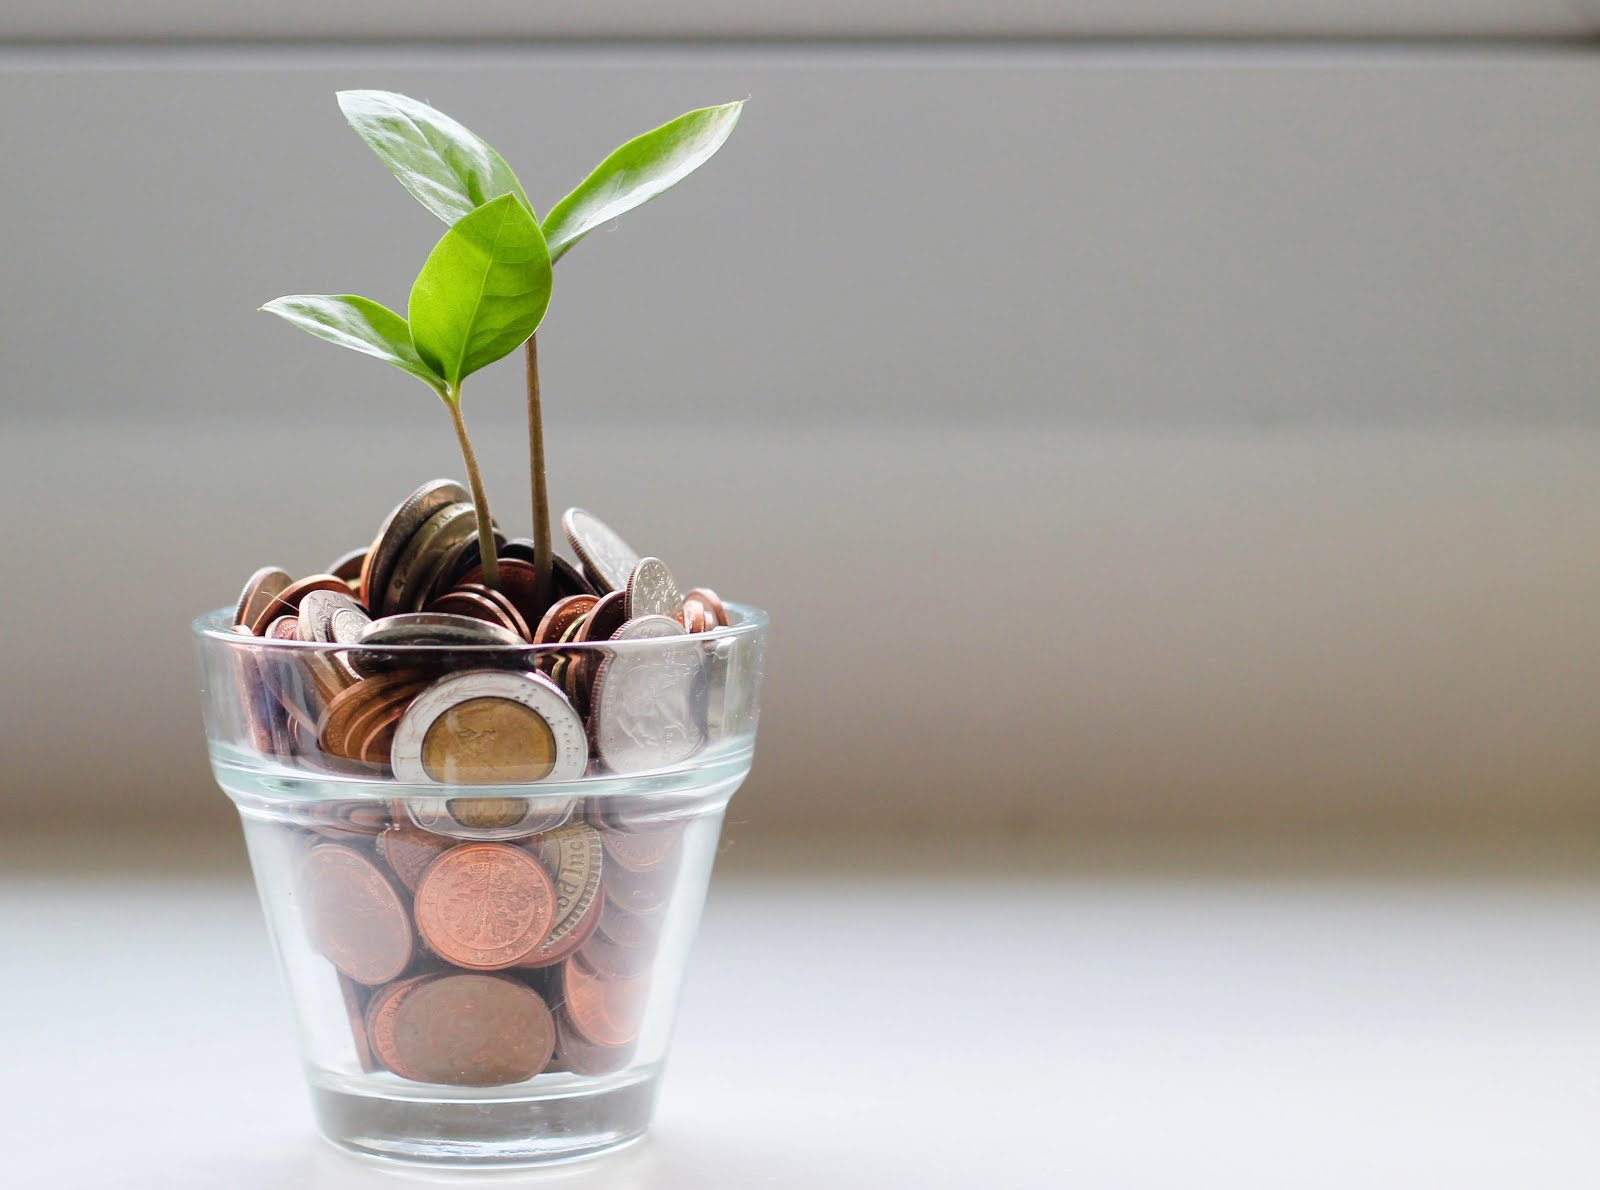 Top eco-friendly ways (tips and tricks) to save money